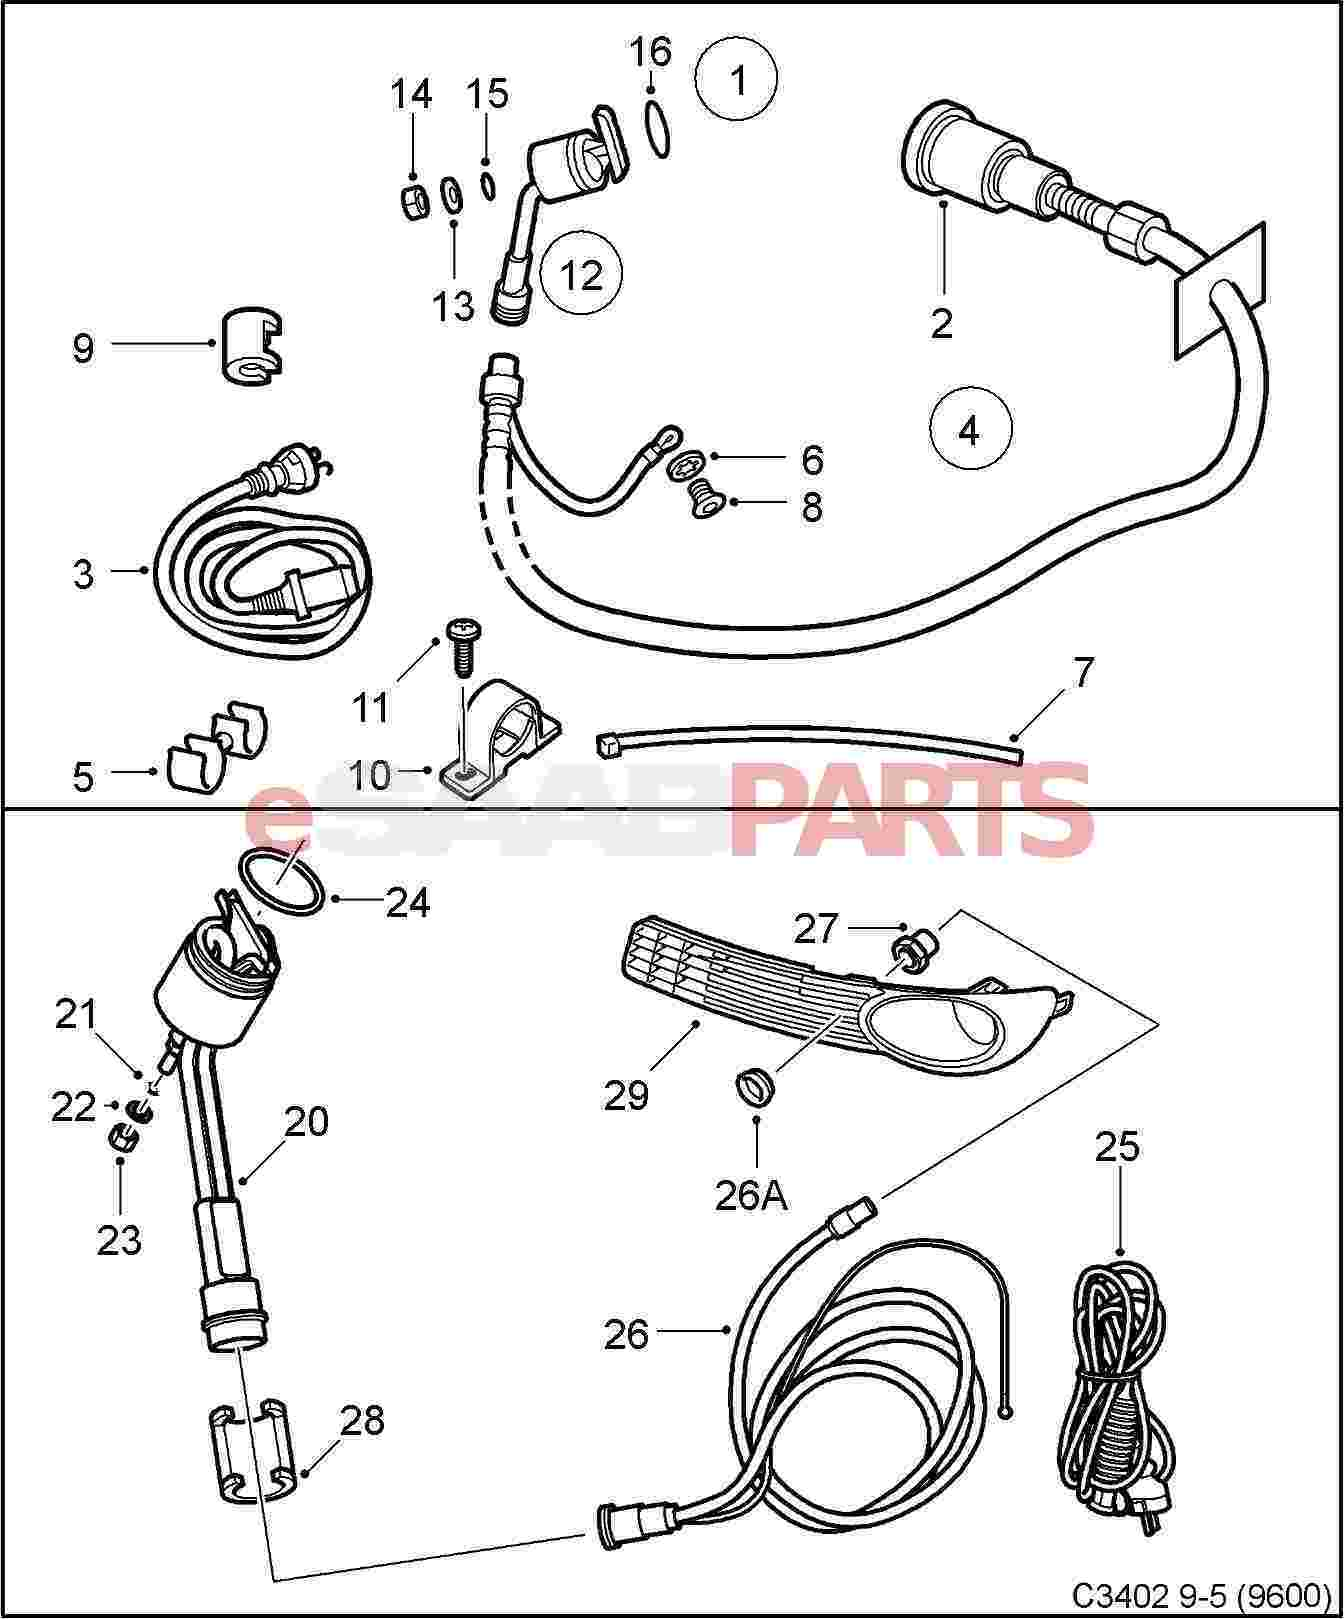 ej205 engine diagram auto electrical wiring diagramhyster ignition wiring diagram , 1997 jaguar xj6 wiring diagram , 87 gl subaru wire harness diagram , beams wiring diagram , 82 f150 brake light wiring